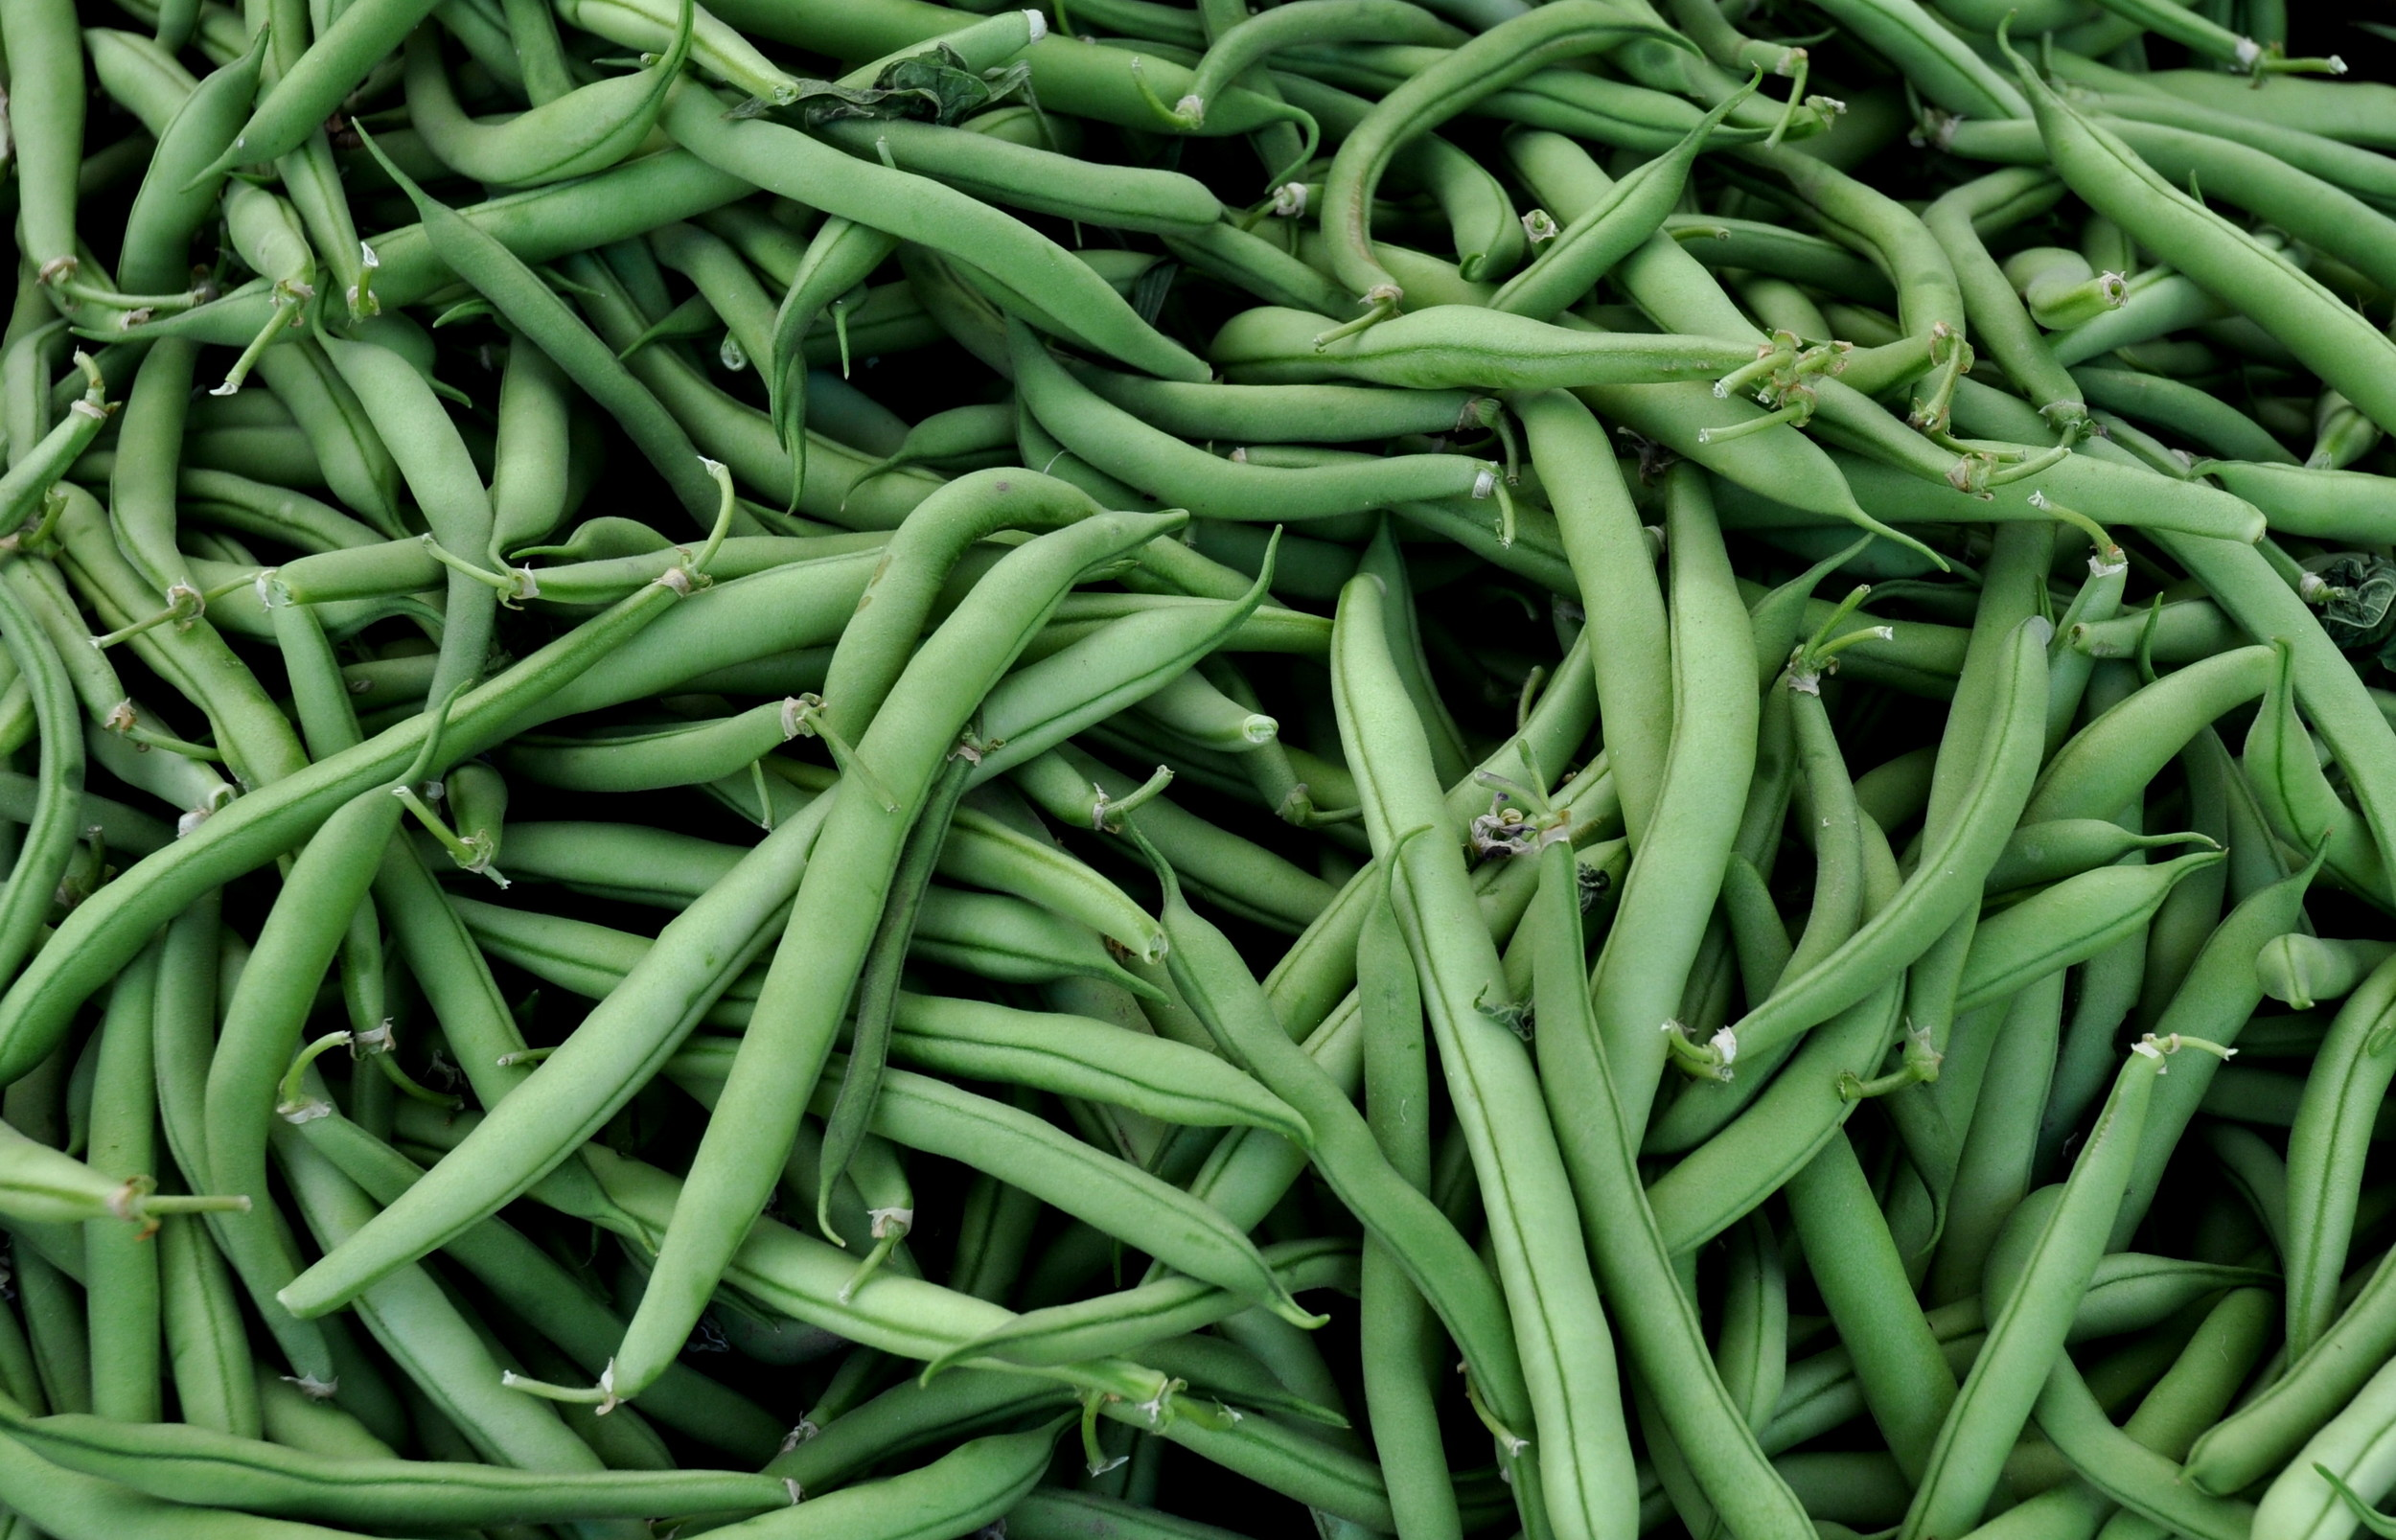 Green beans from Alvarez Organic Farms. Photo copyright 2014 by Zachary D. Lyons.